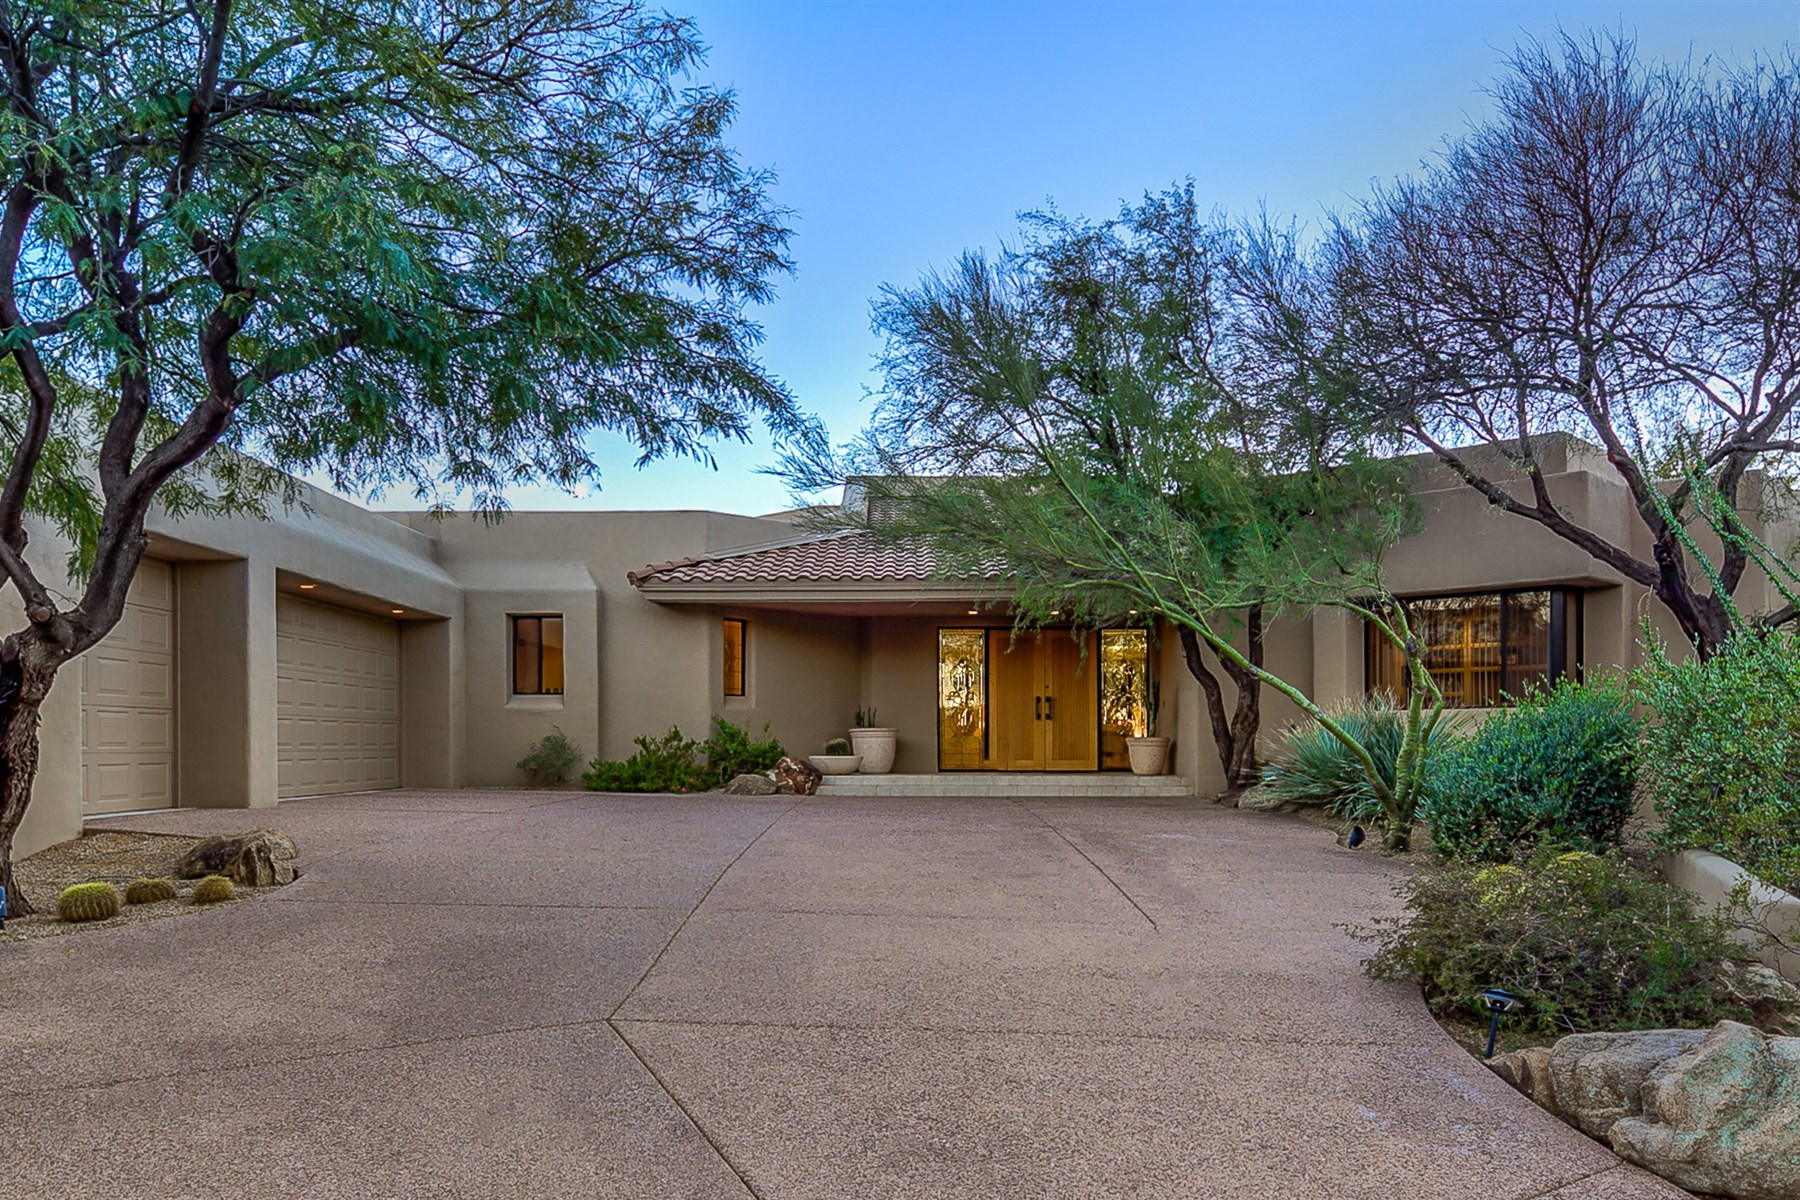 一戸建て のために 売買 アット Bright and open custom abounds with beautiful views 10665 E Palo Brea Dr Scottsdale, アリゾナ 85262 アメリカ合衆国